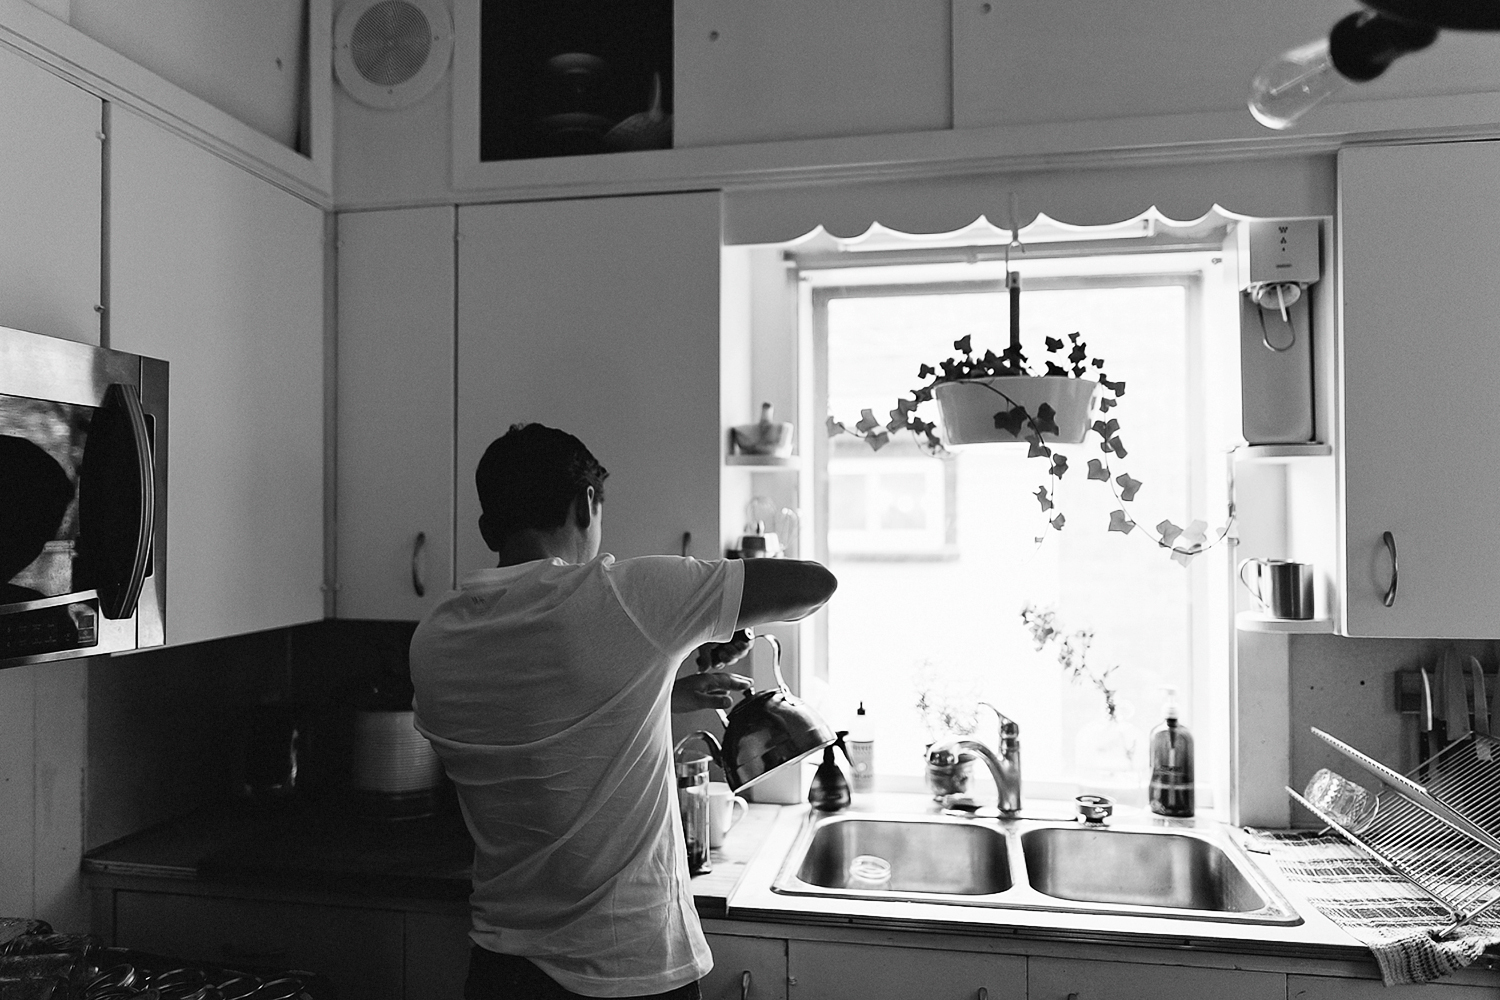 hamilton-toronto-vintage-old-home-rustic-inhome-maternity-session-toronto-maternity-photographer-ryanne-hollies-photography-details-dad-to-be-helping-make-coffee-french-press.jpg